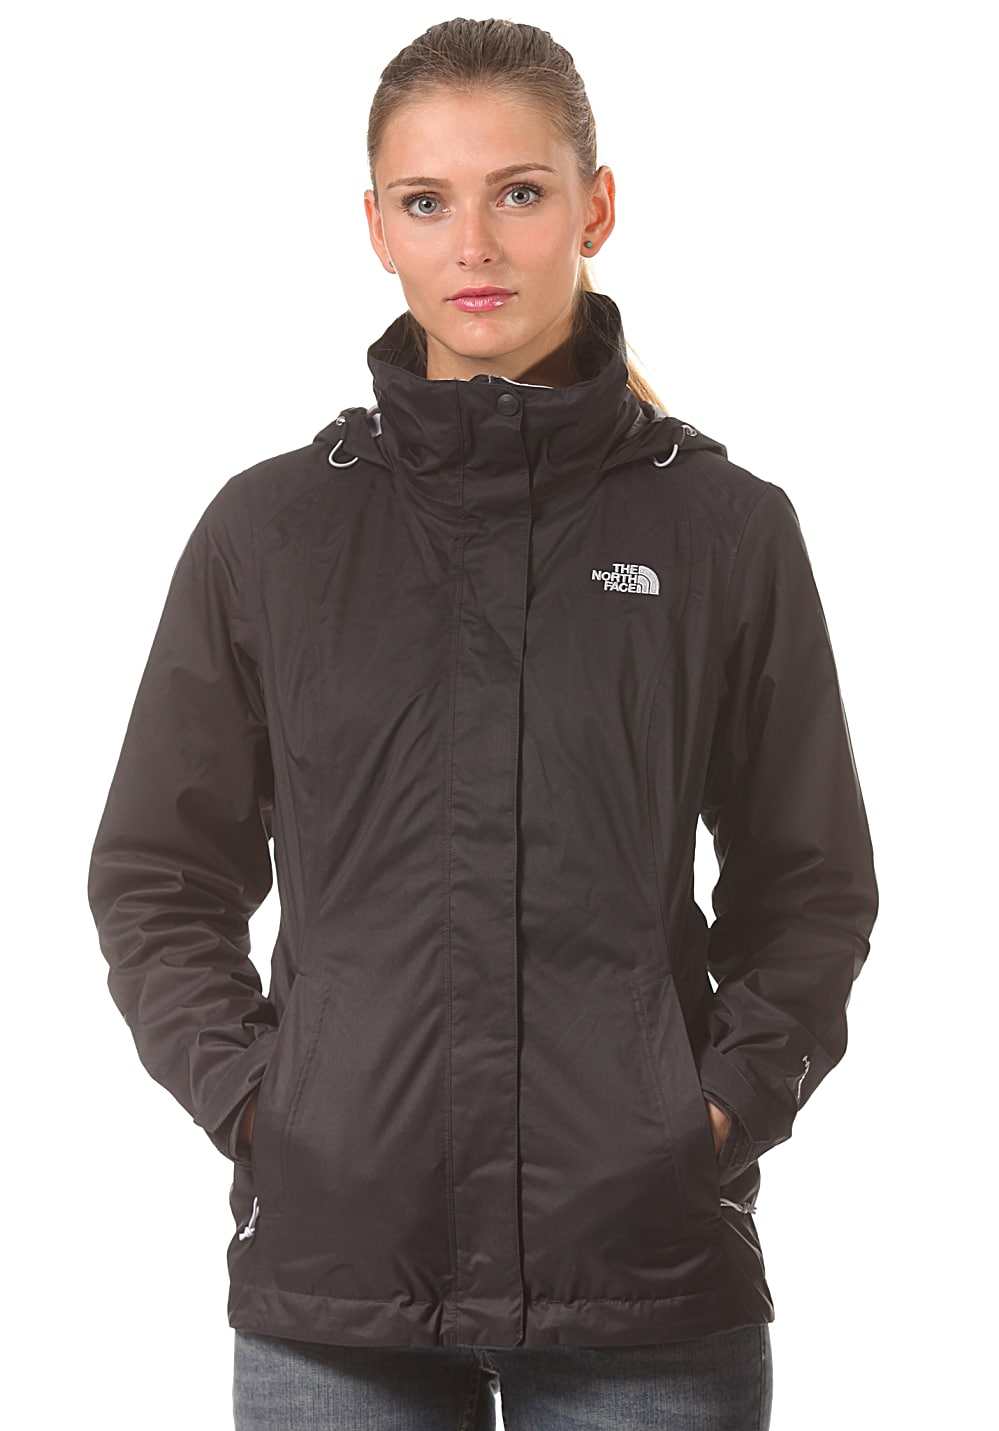 THE NORTH FACE Evolve II Triclimate Outdoorjacke für Damen Schwarz